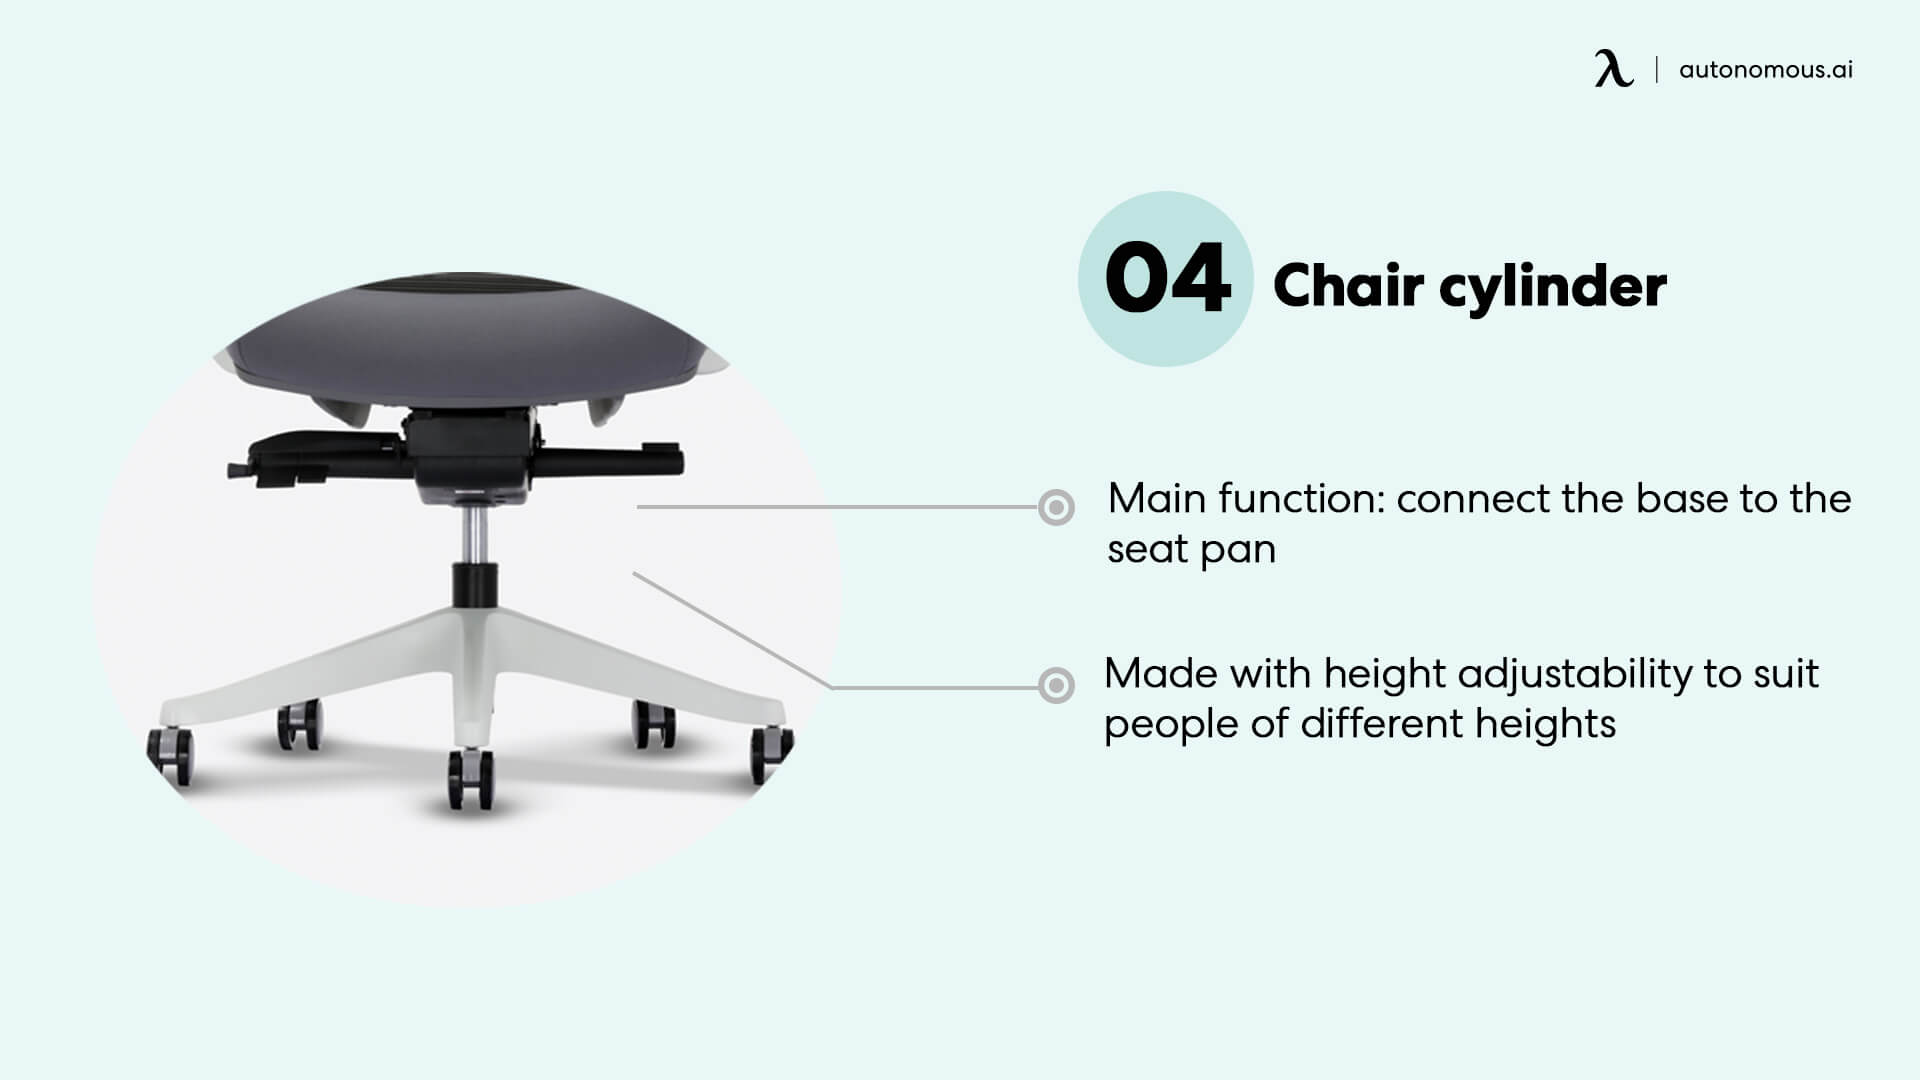 Chair cylinder connect the base and seat pan